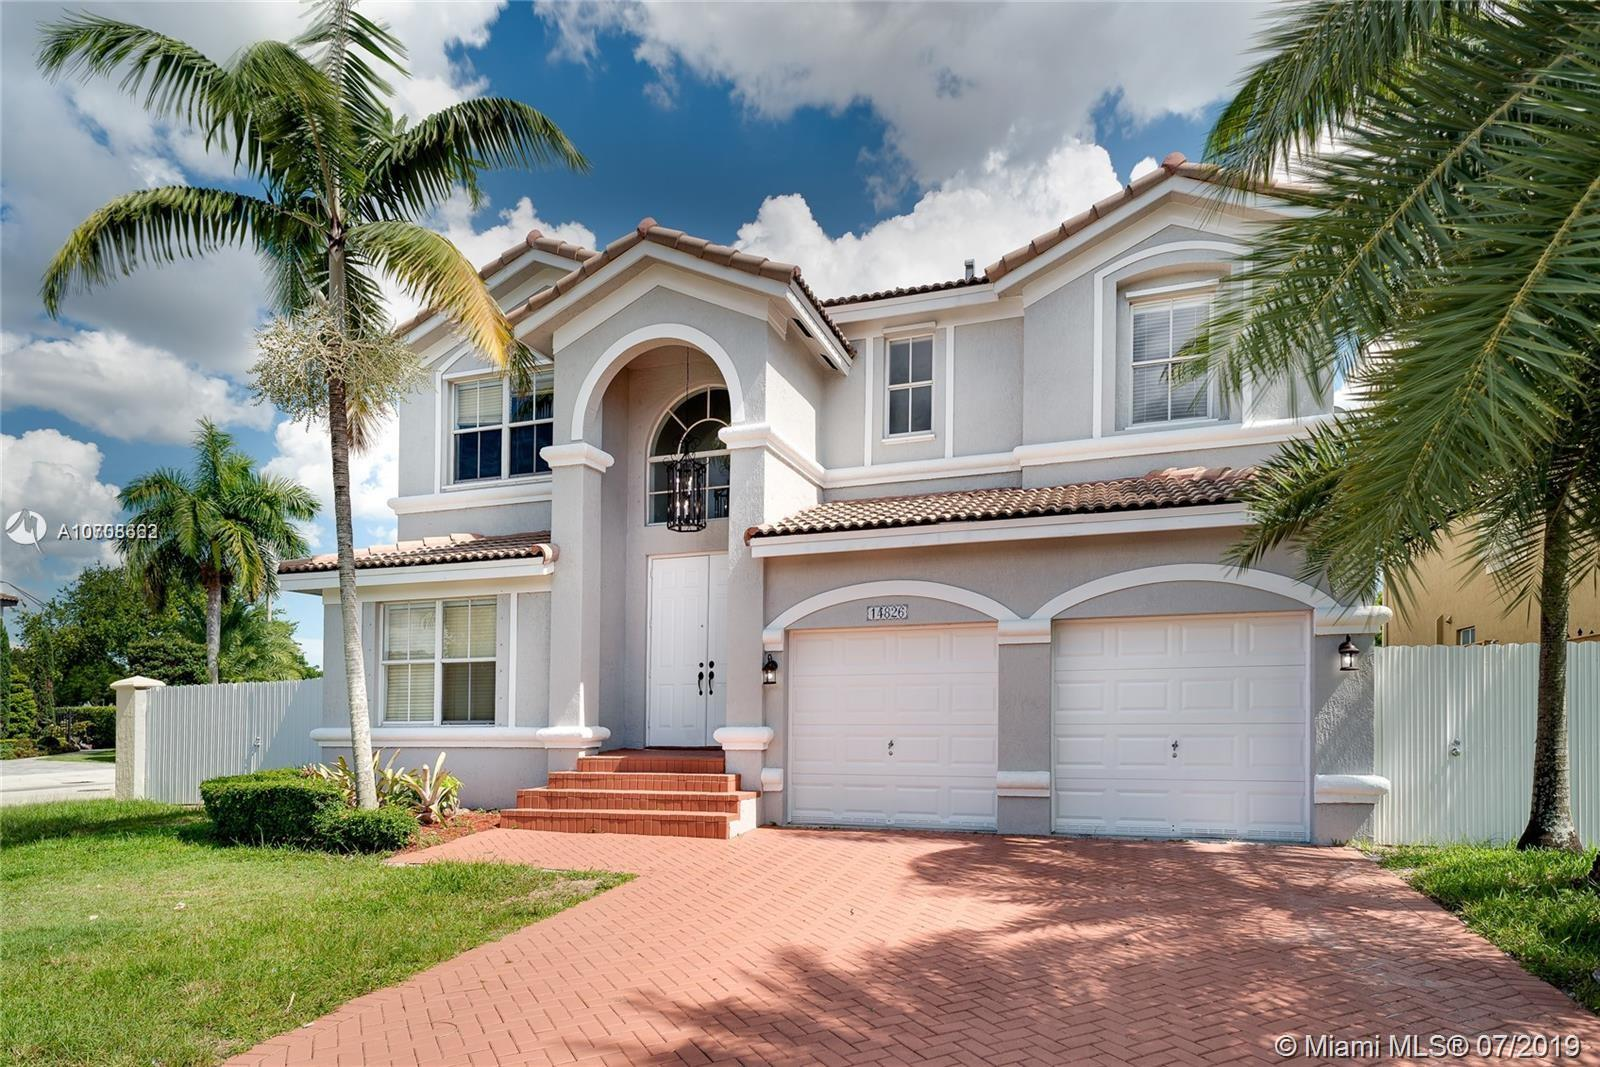 14826 SW 25th Ln, Kendall in Miami-dade County County, FL 33185 Home for Sale